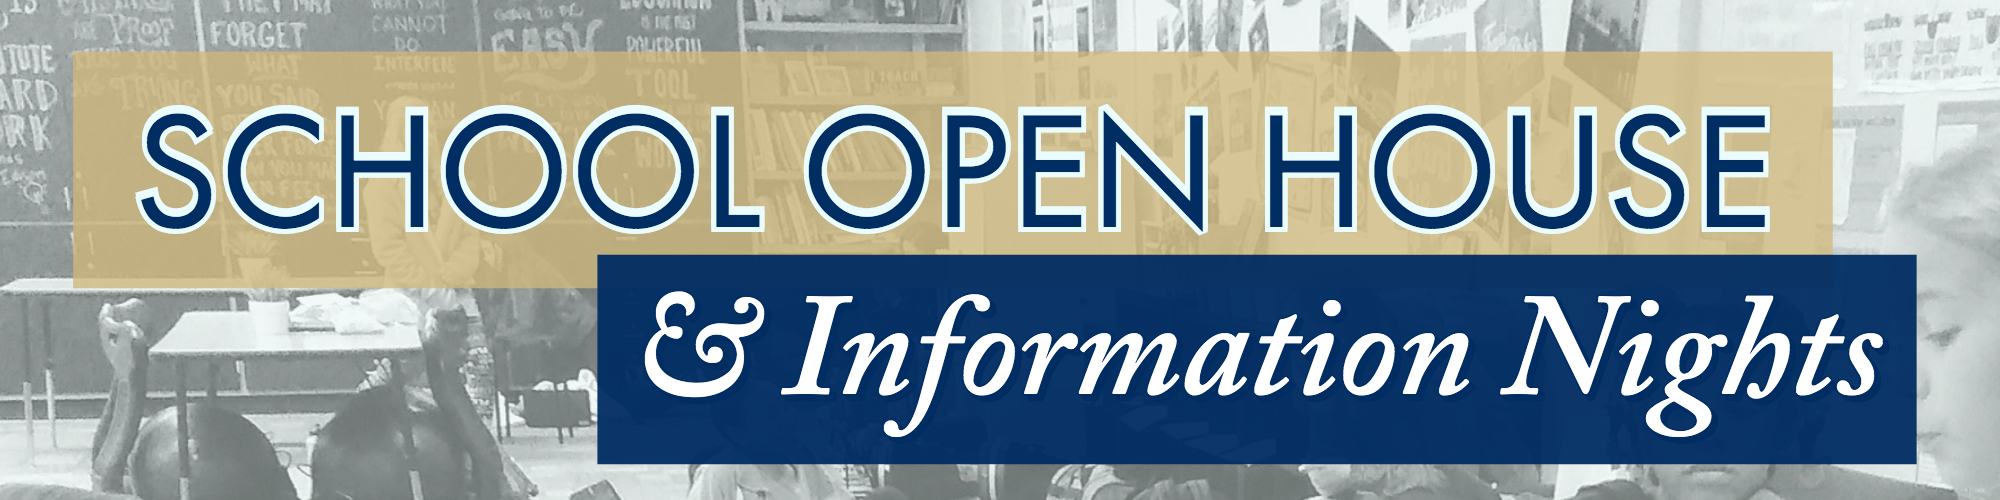 Gilbert Public Schools Open House and Information Nights